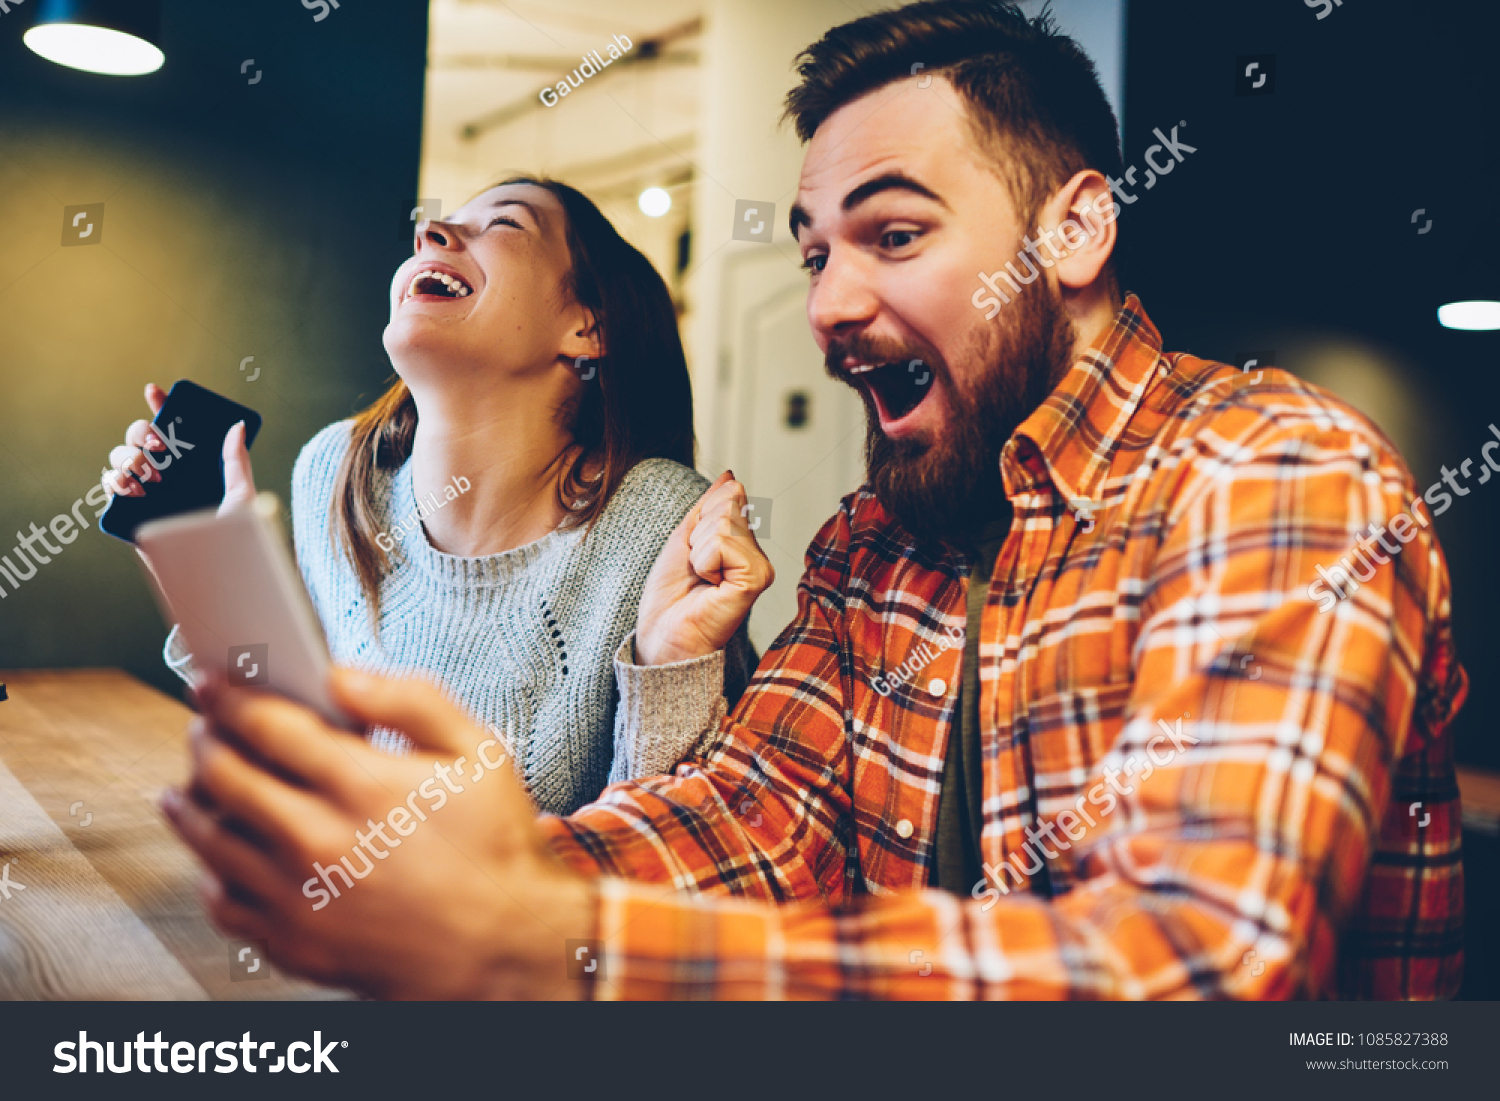 Excited male and female hipsters rejoice in winning an internet lottery made bets on website on modern smartphone.Happy couple in love celebrating victory in online competitions enjoying success #1085827388